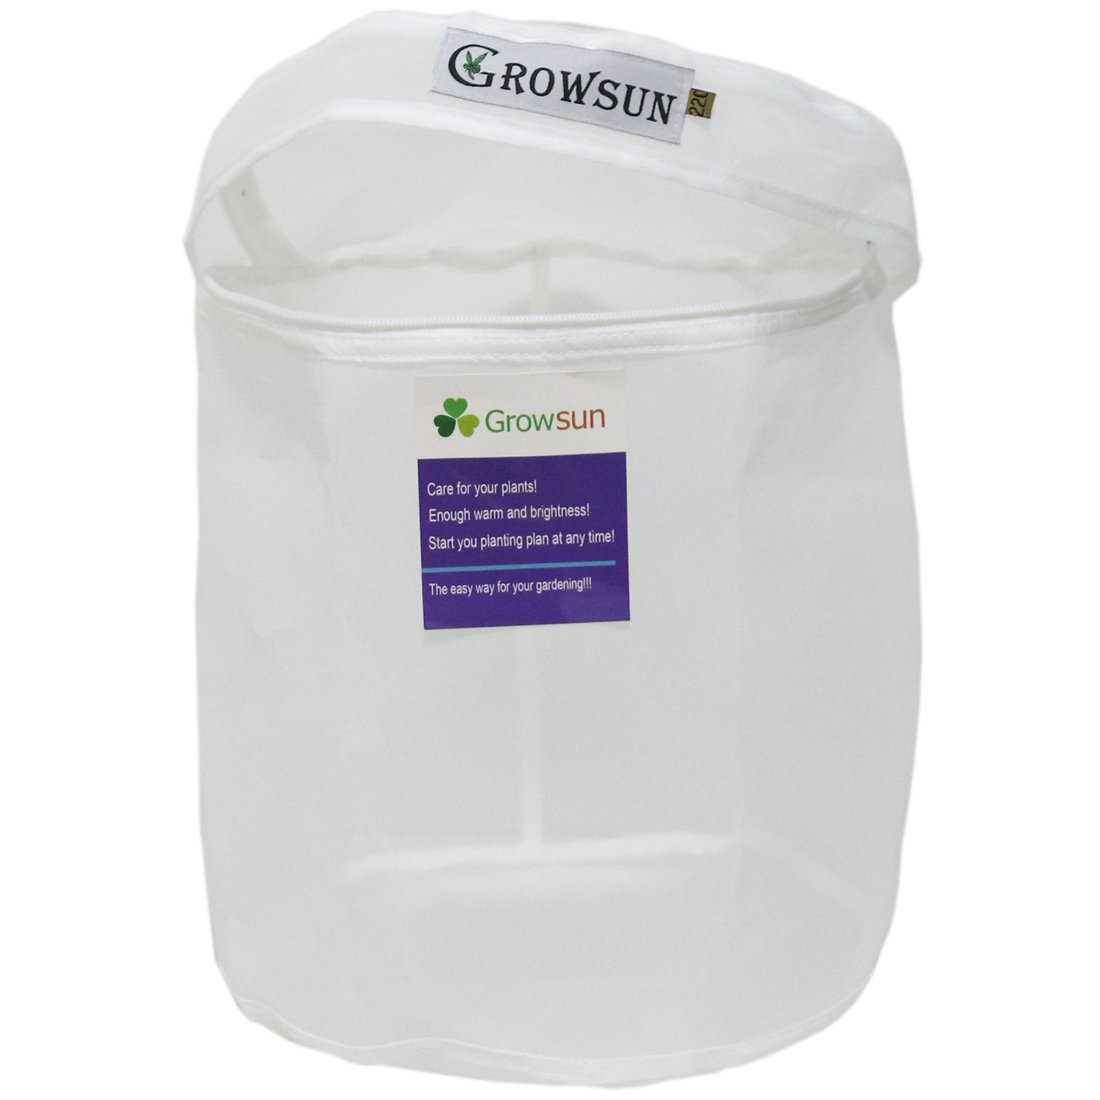 Growsun 5 Gallon 220 Micron Zipper Bag for Extracting Washing Machine - Herbal Extractor Durable Filter Bag by Growsun